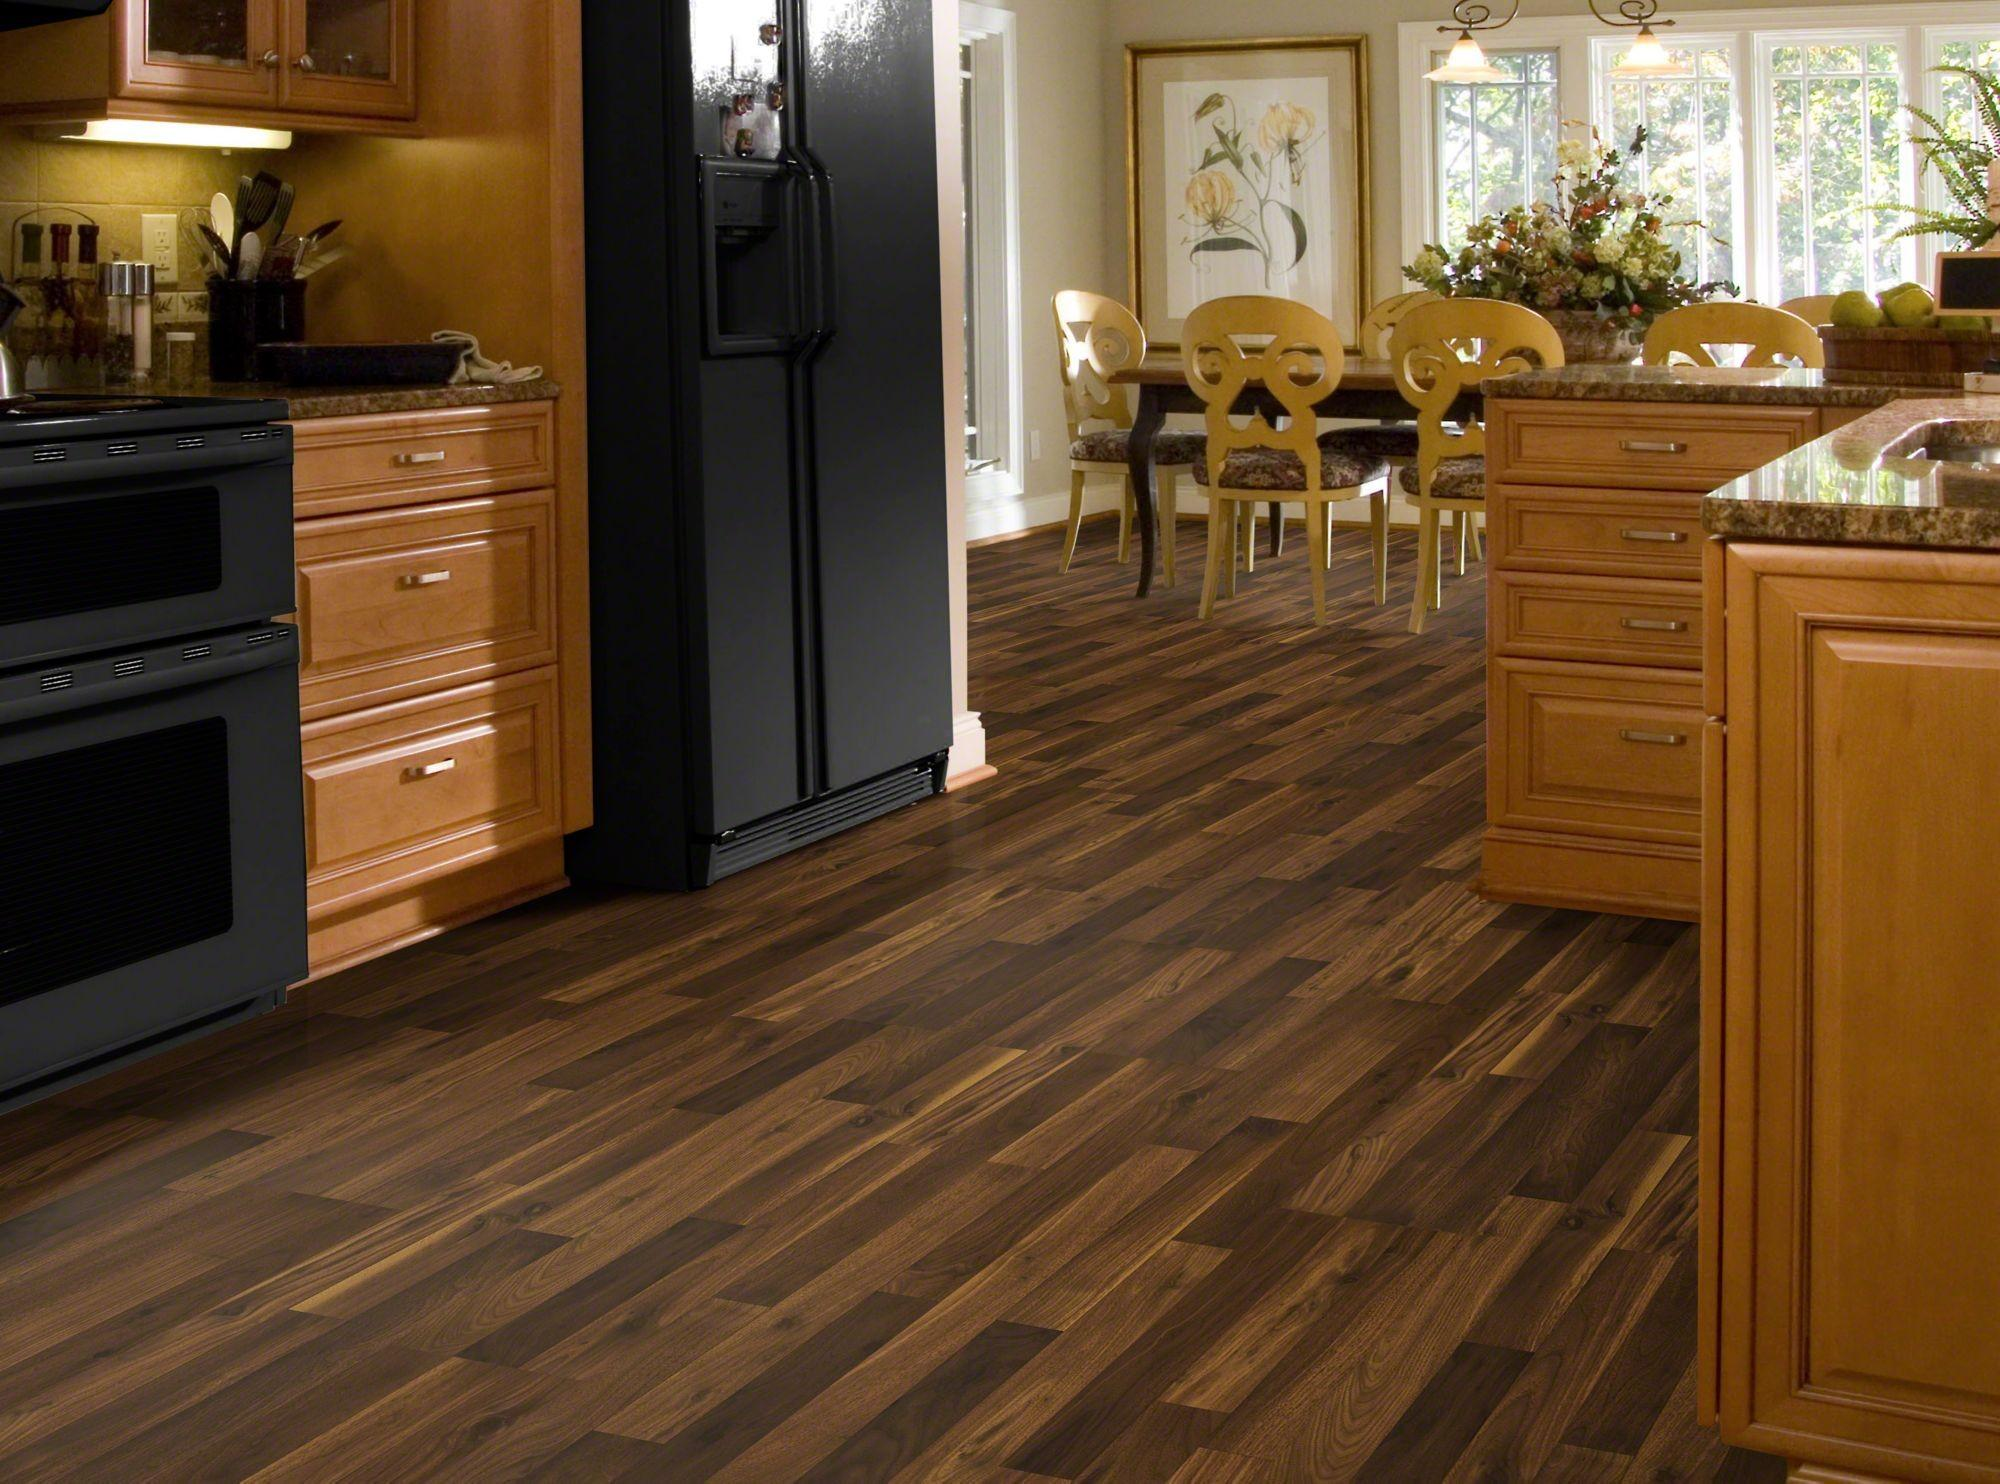 Shaw Laminate Flooring: Not Just for Floors